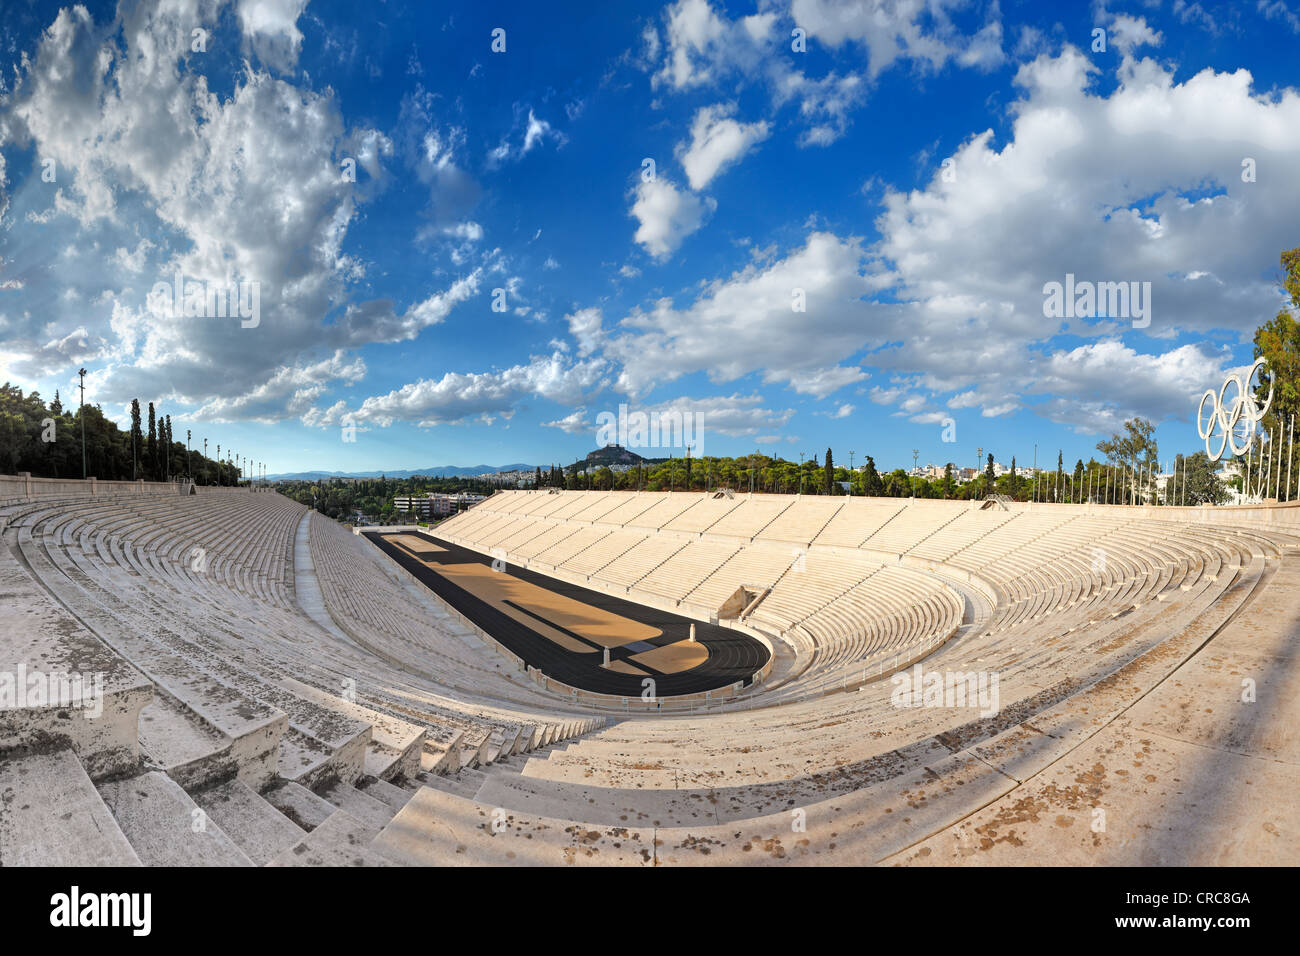 Panathenaic Stadium (329 B.C.) in Athens, hosted the first modern Olympic Games in Greece. - Stock Image